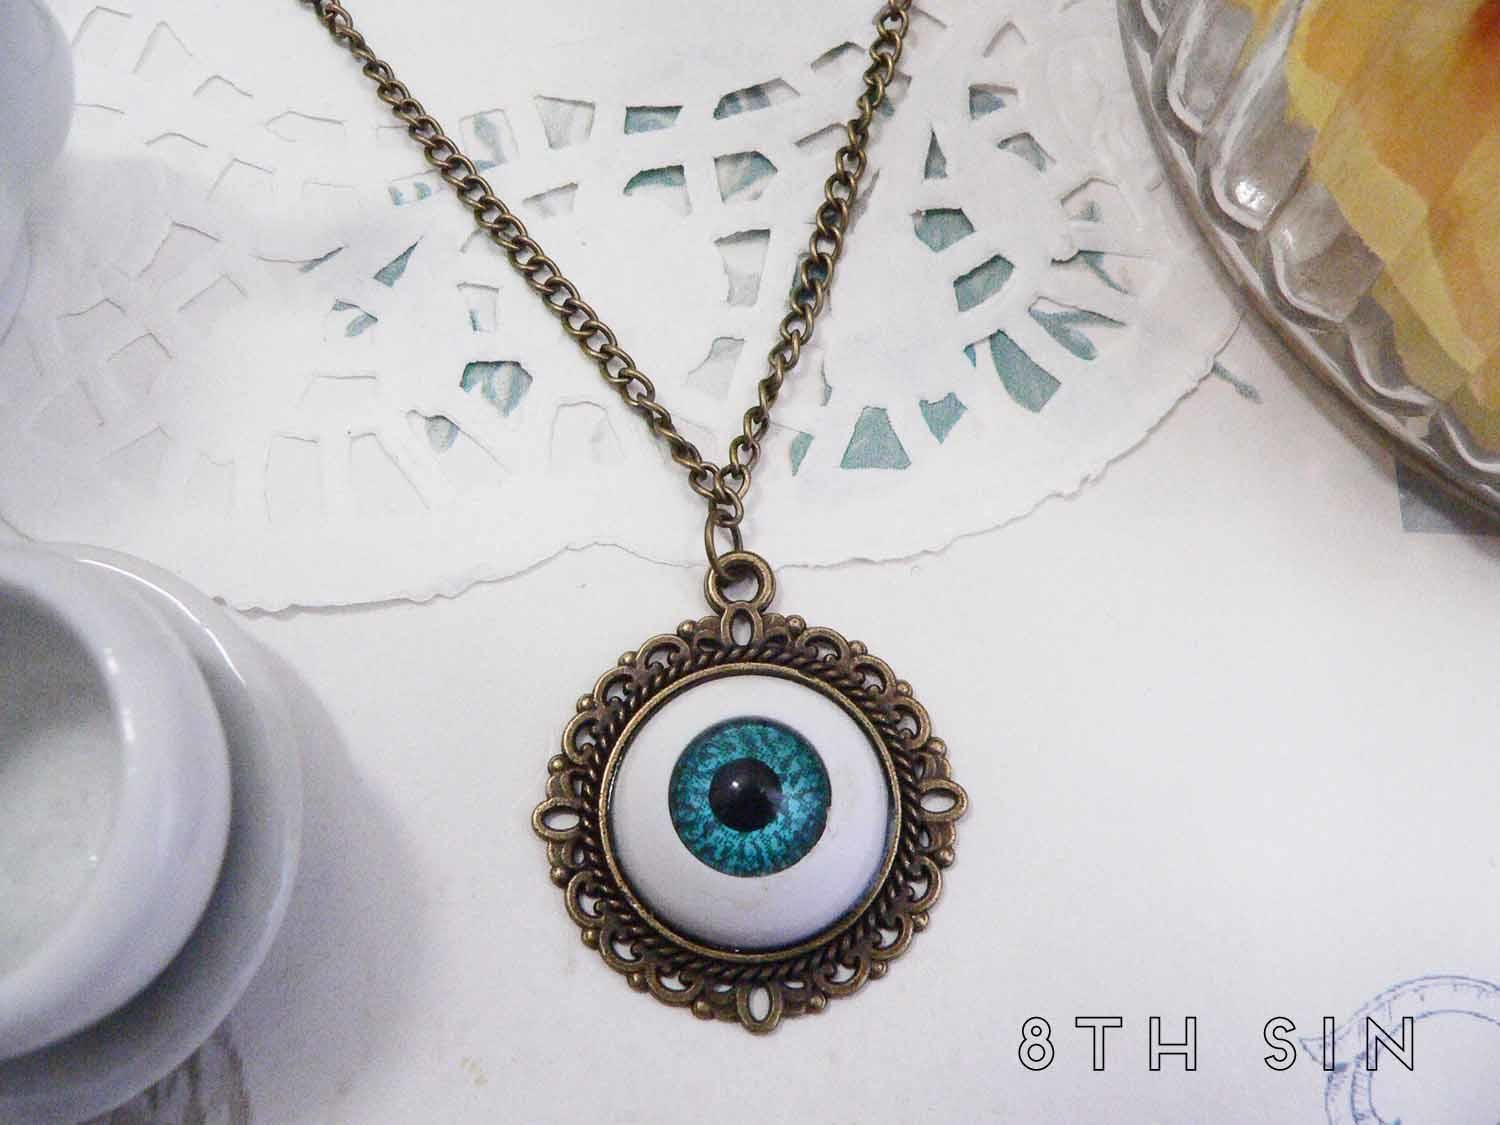 jewelry kreepsville necklace amazon pendant portal necklaces eyeball detail green com